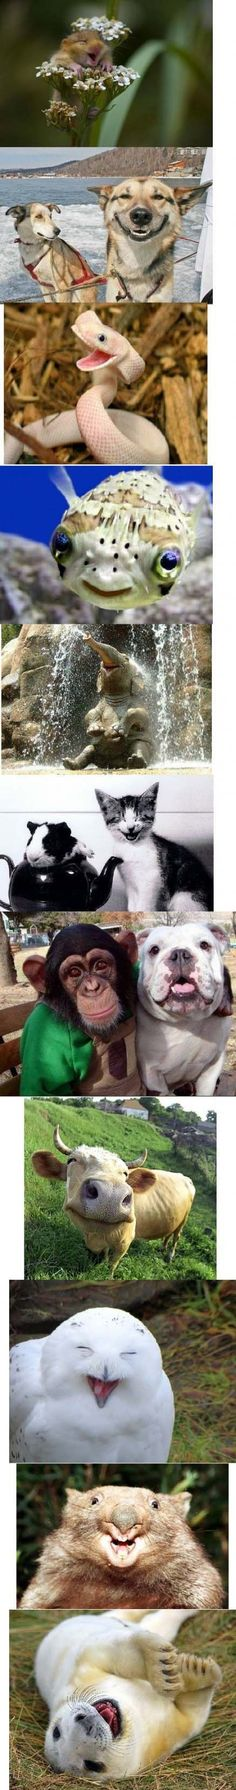 Isn't it amazing how comforting animals are?     From: http://quicklol.com/wp-content/uploads/2012/02/happy-animals.jpg